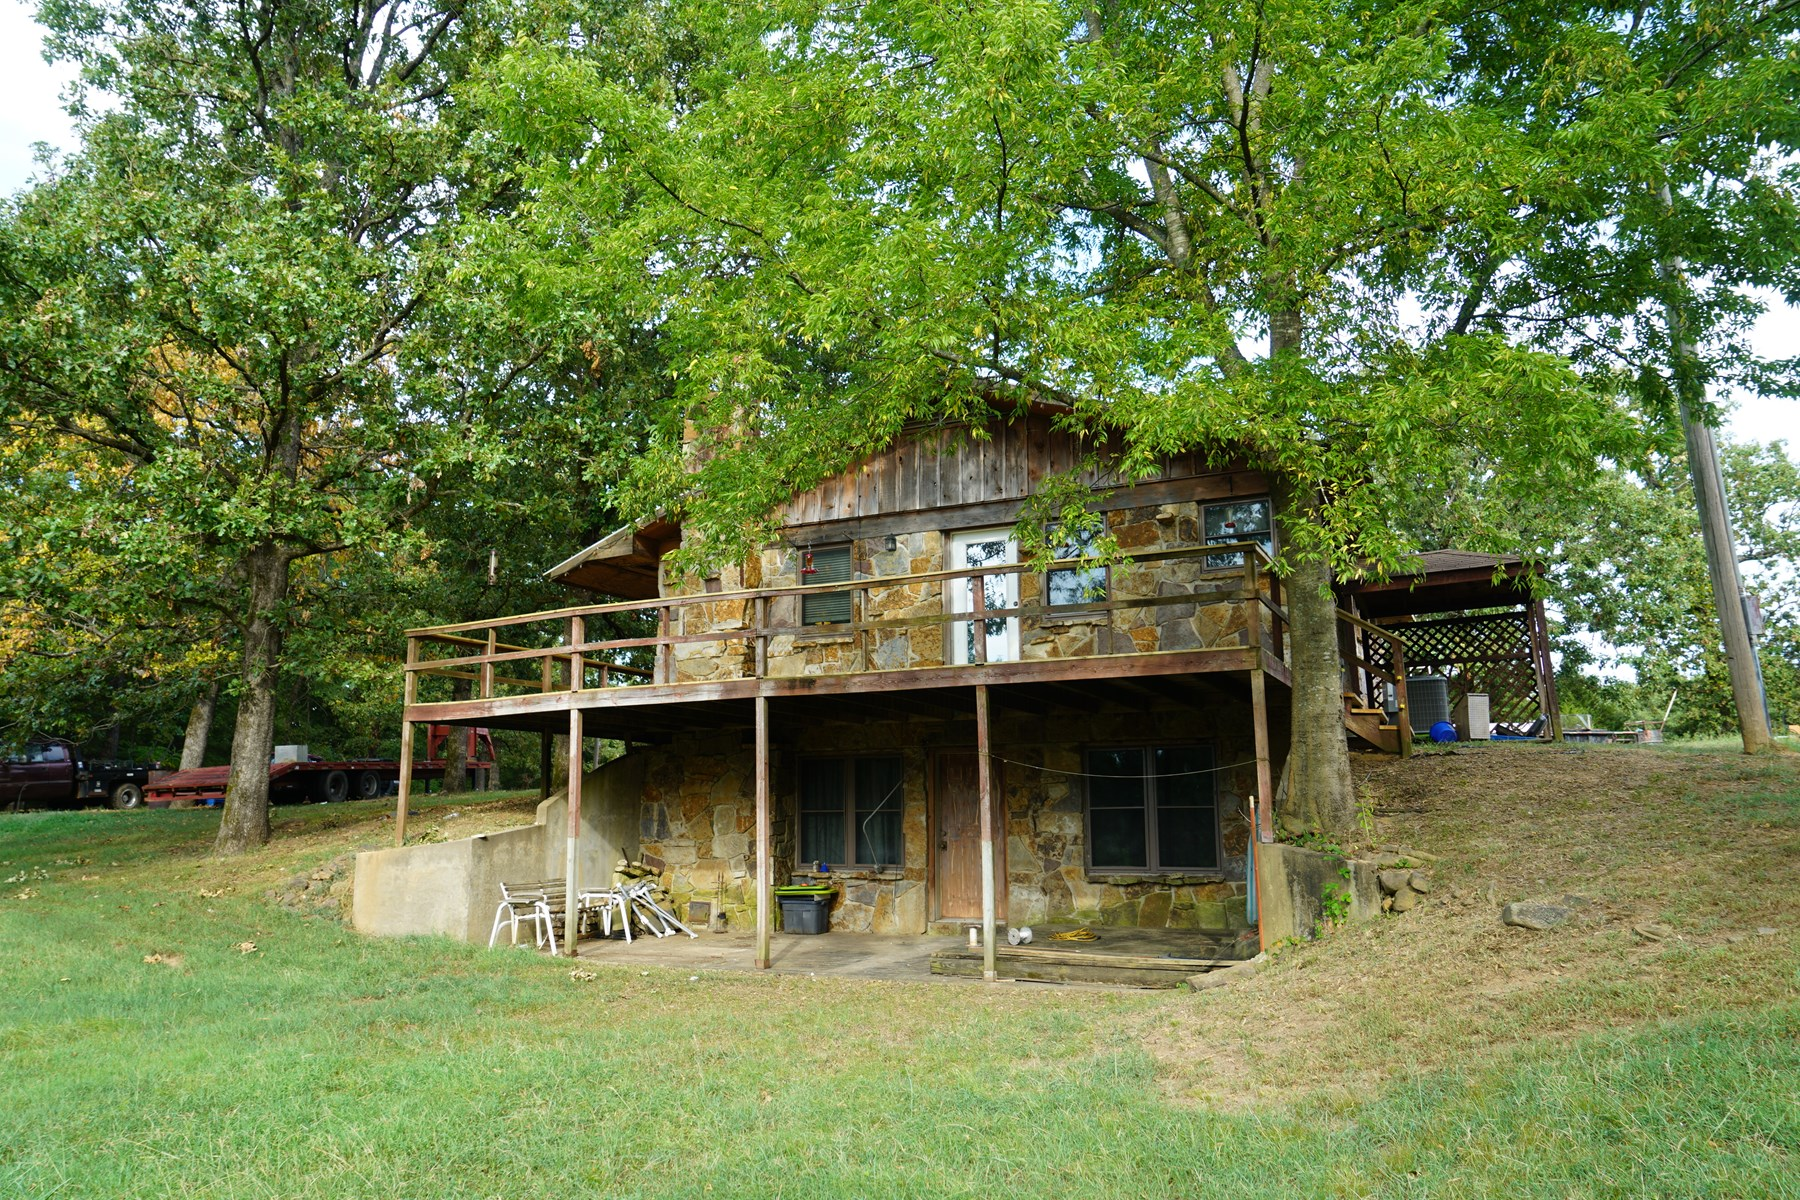 COUNTRY HOME AND LAND FOR SALE IN OKLAHOMA NATIONAL FOREST